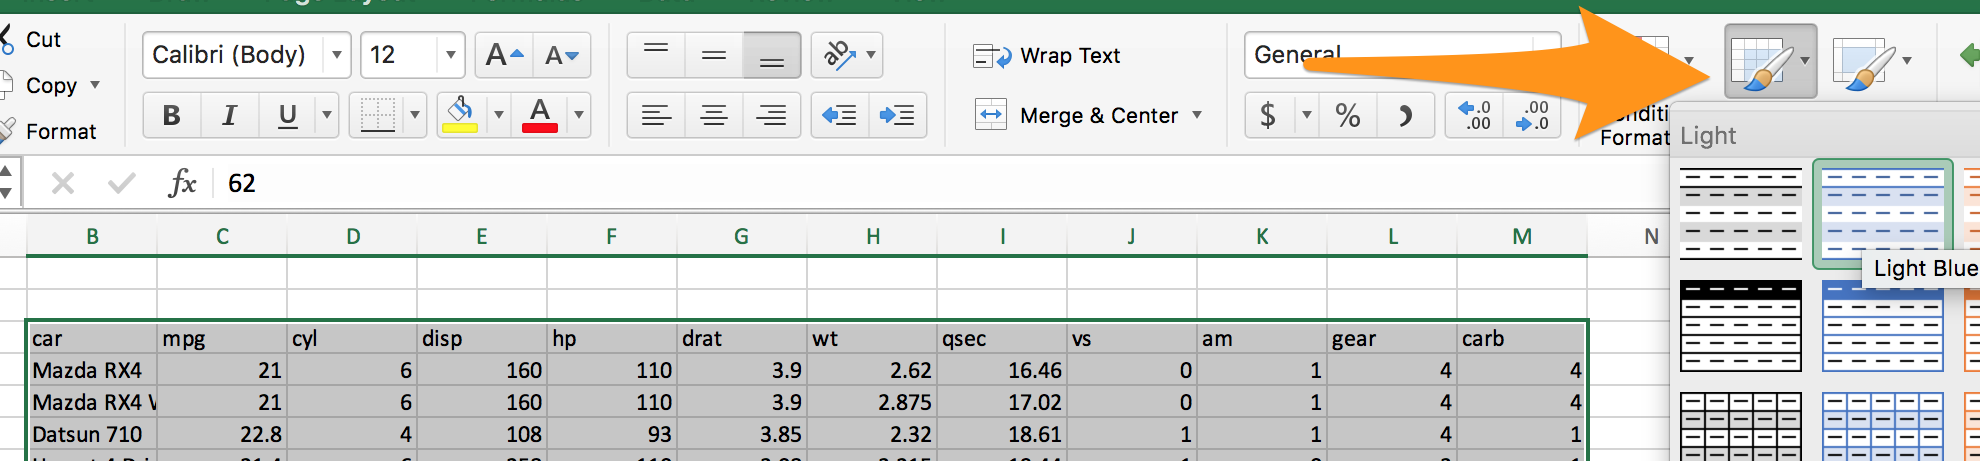 Format as an Excel Table